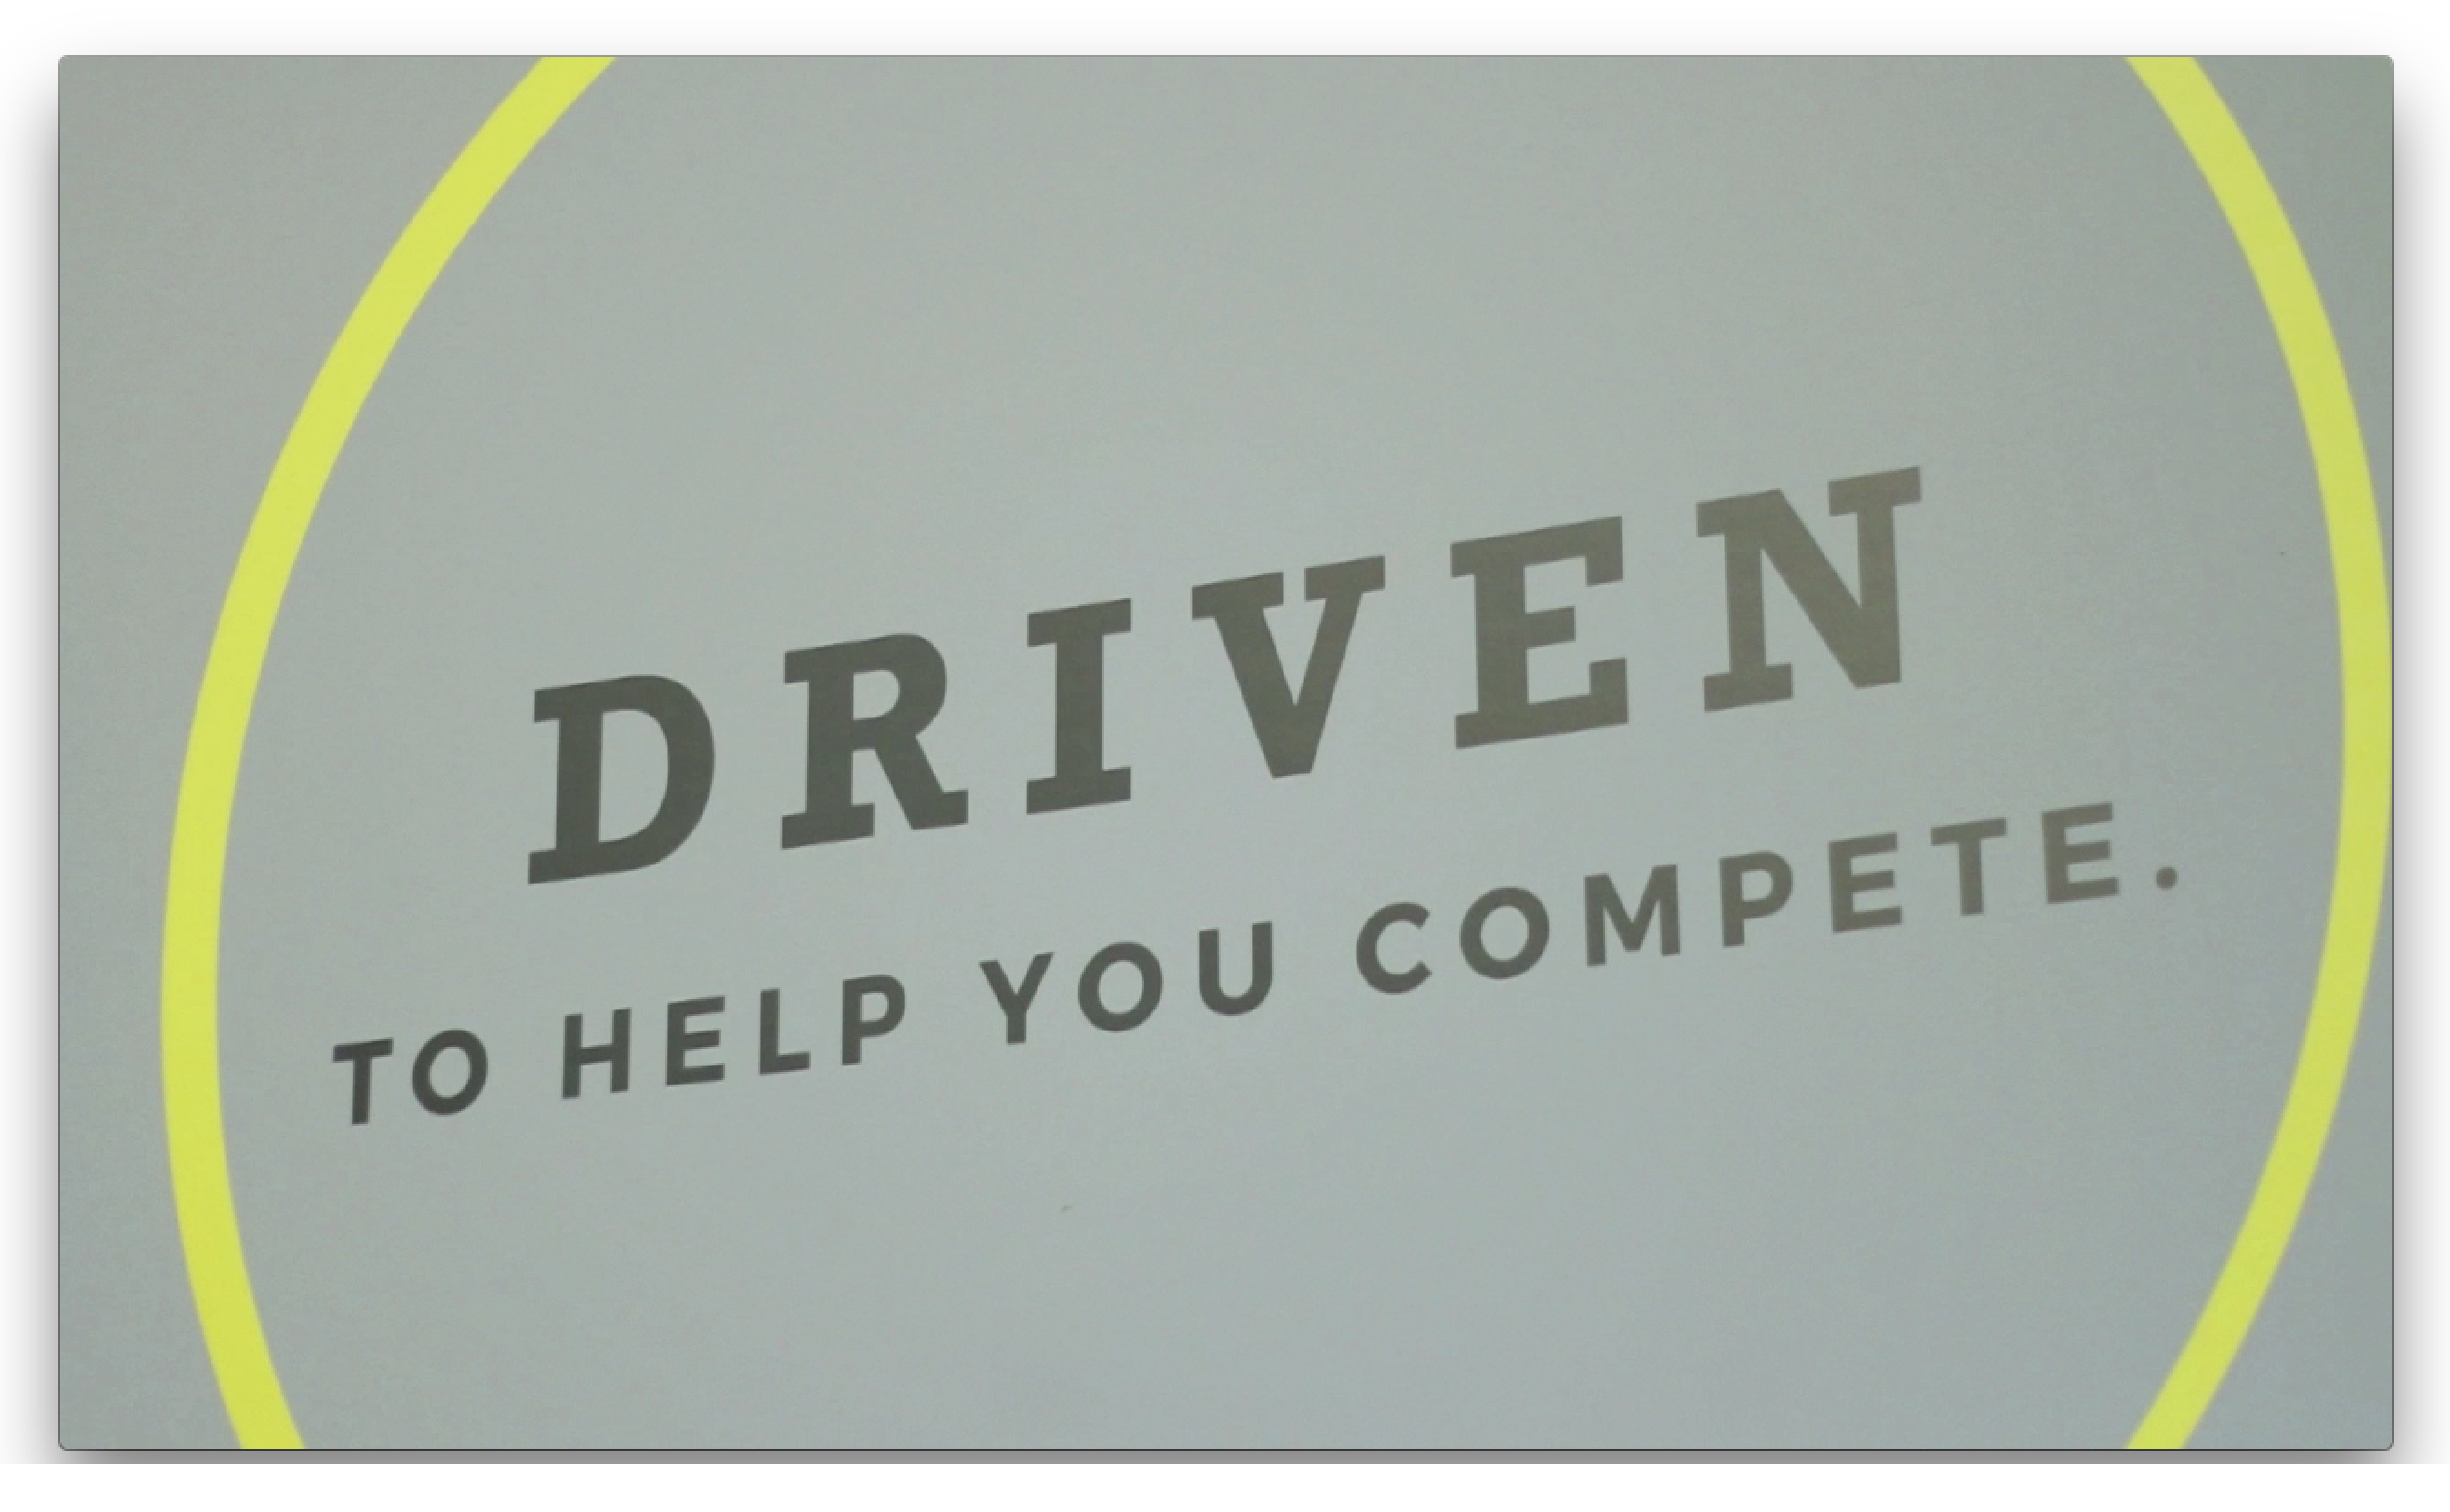 driven-to-help-you-compete-esc